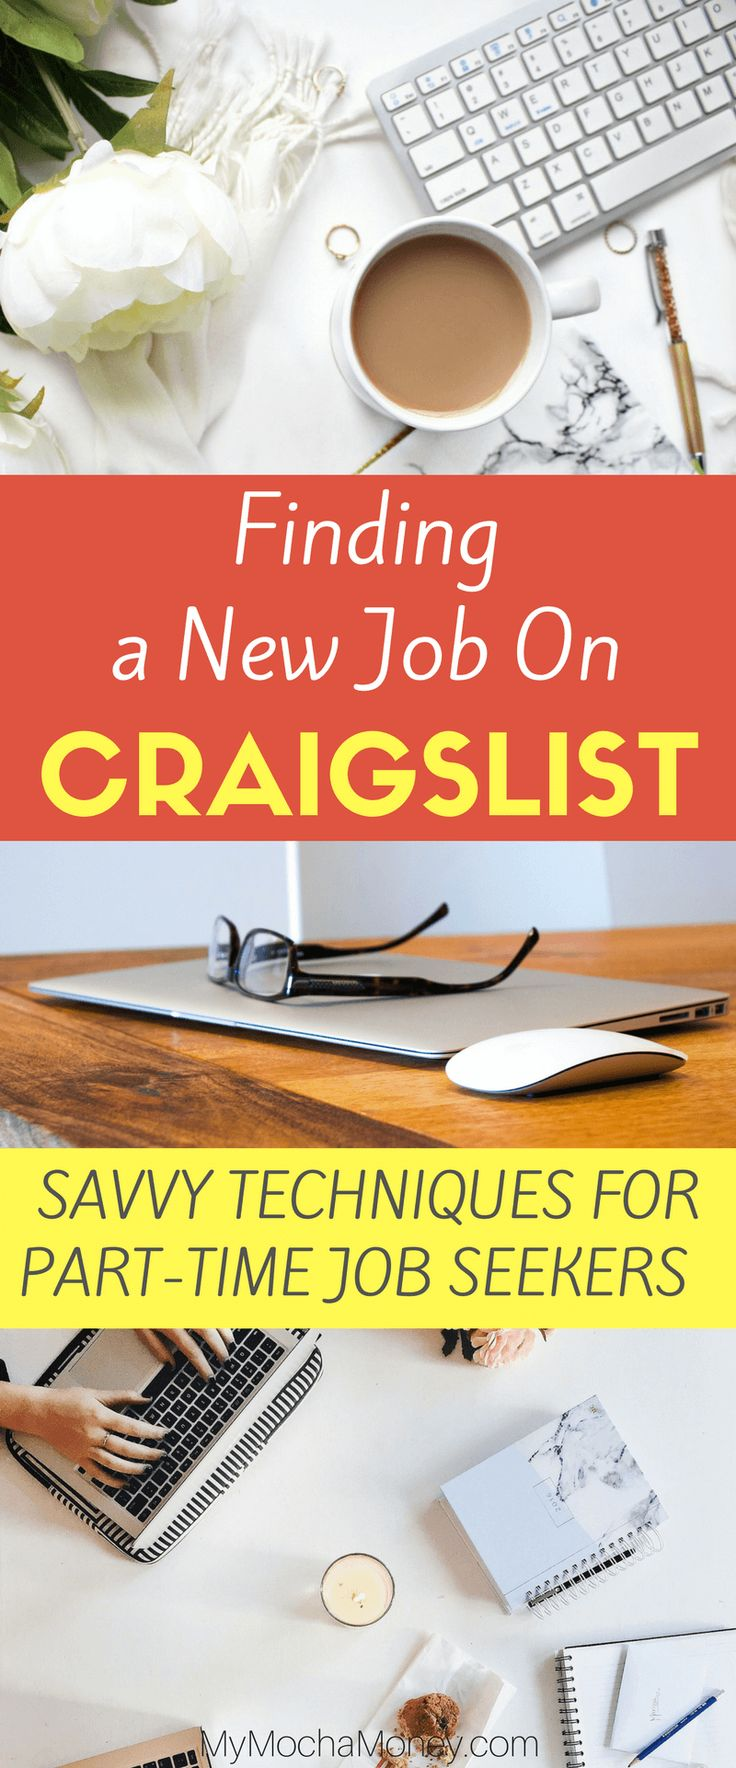 Savvy Techniques To Help You Find Work From Craigslist